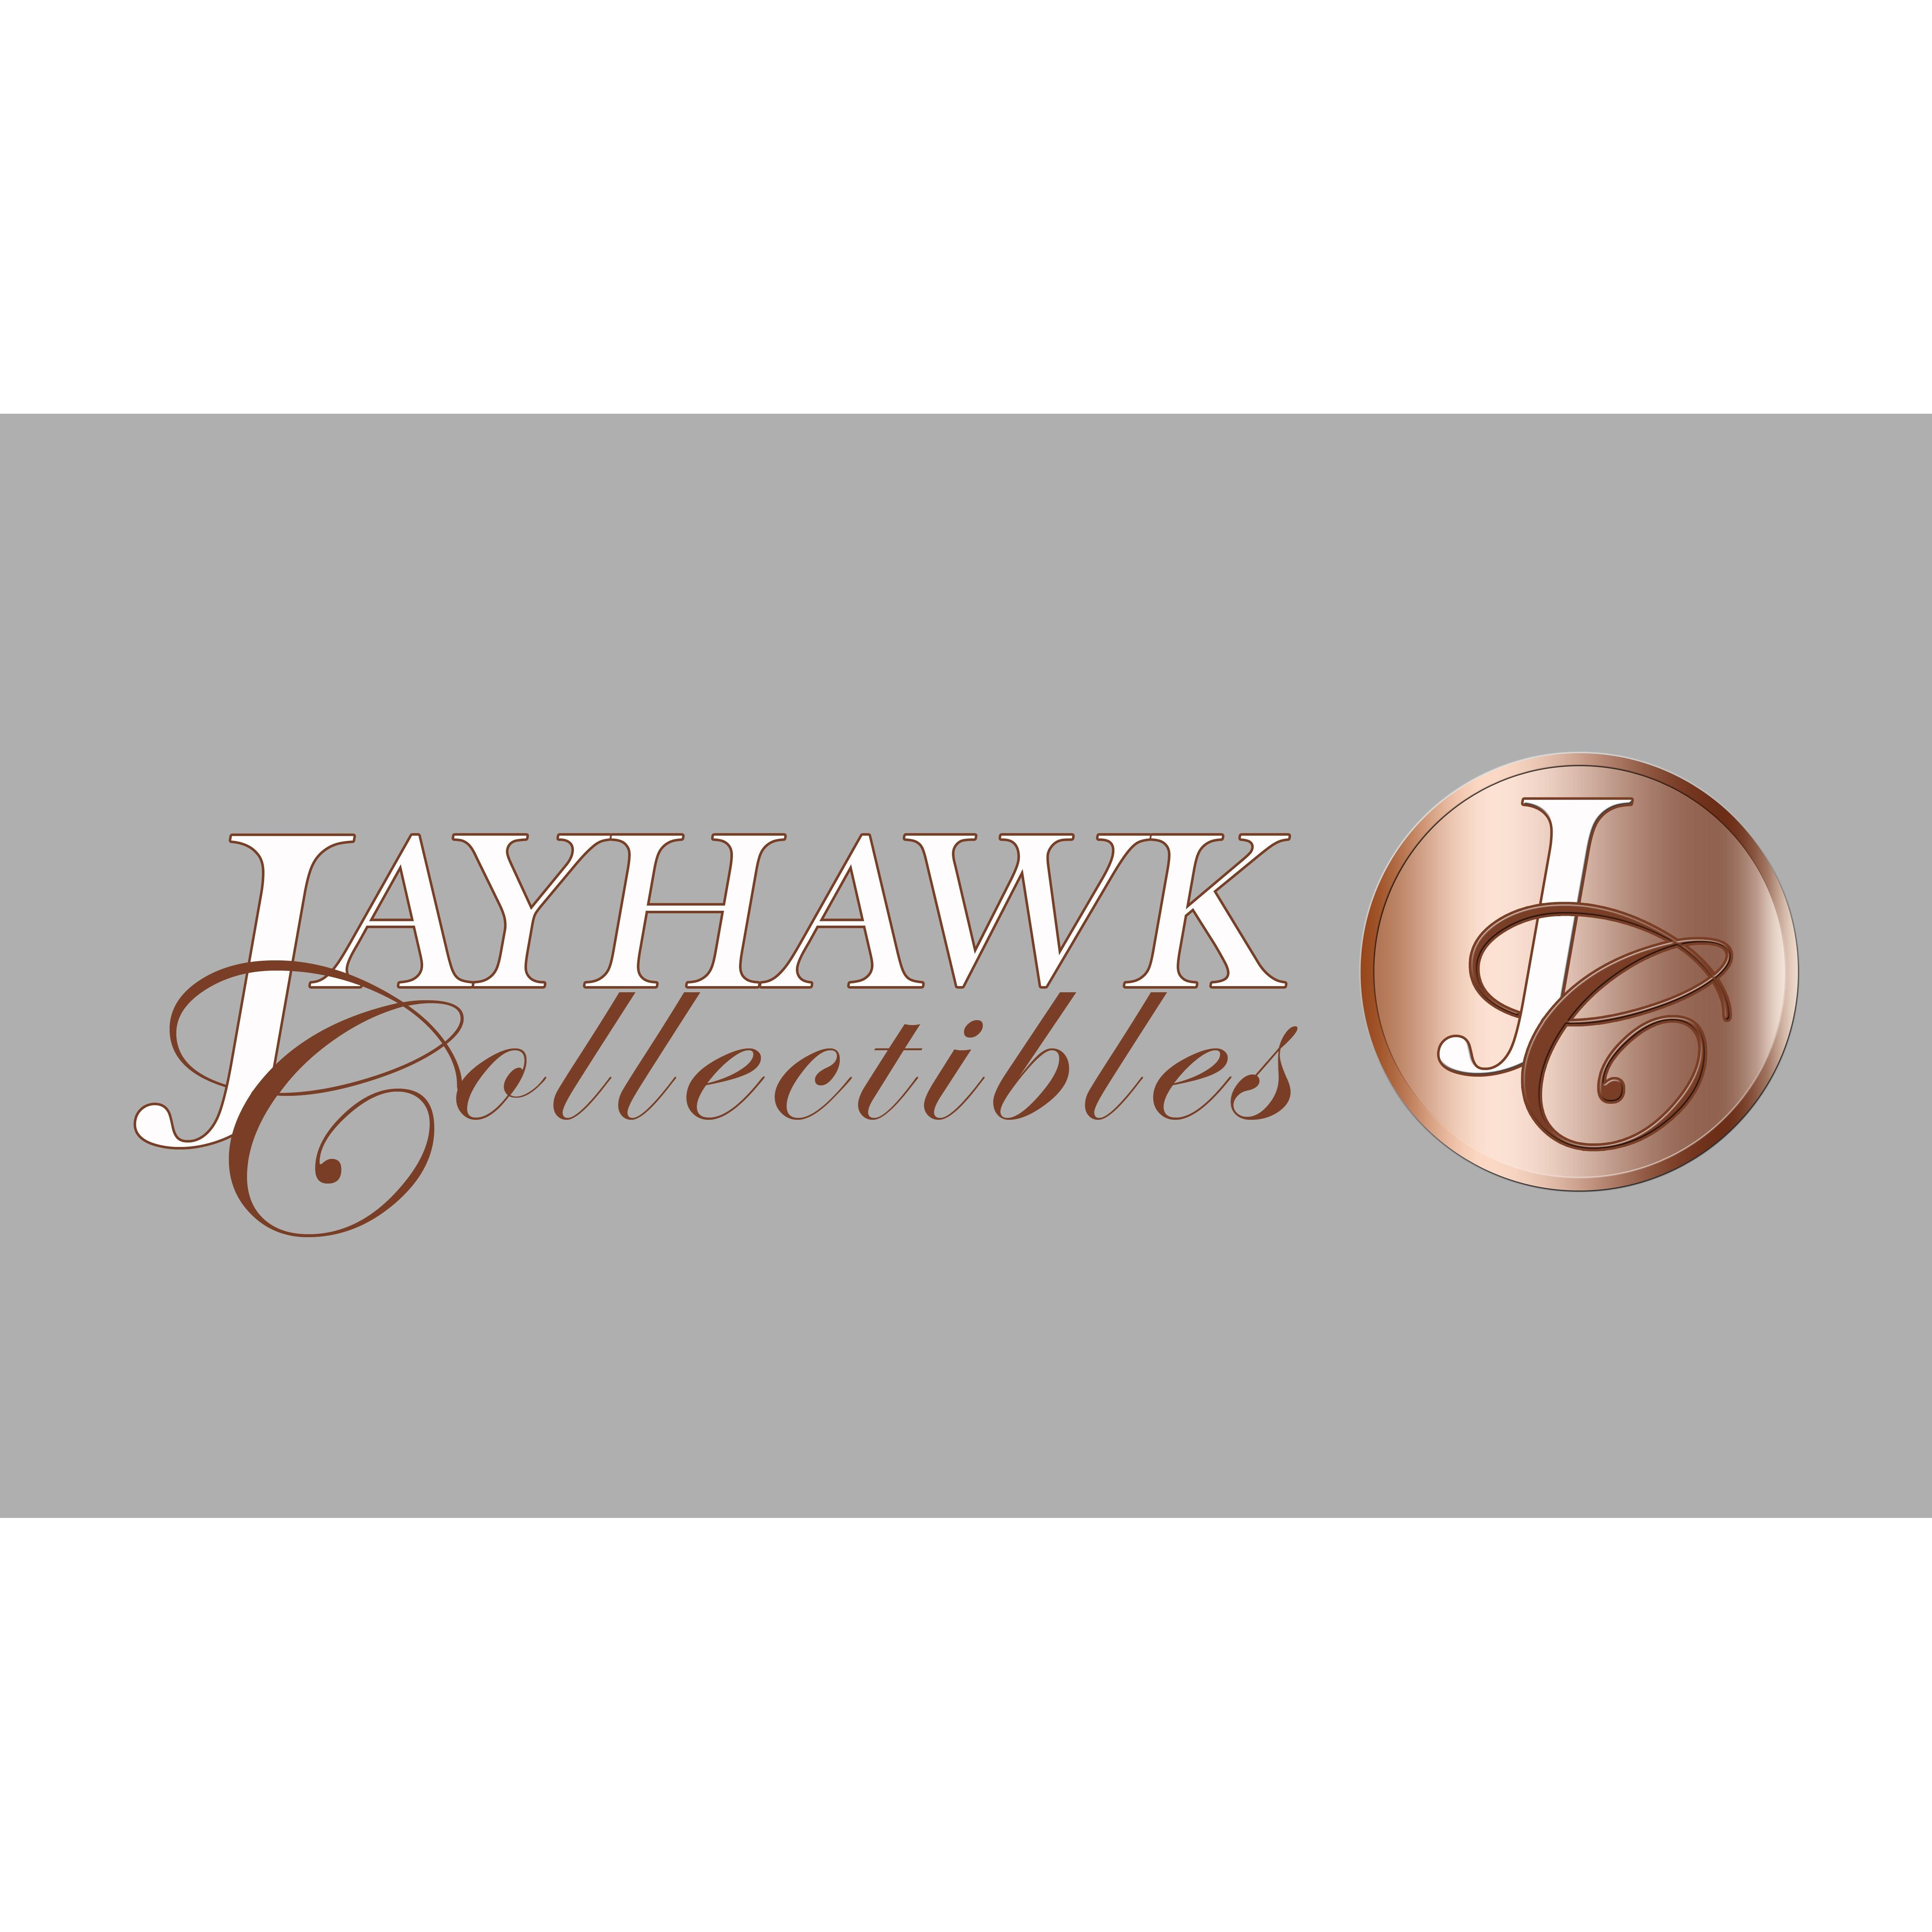 Jayhawk Collectibles and Estate Services